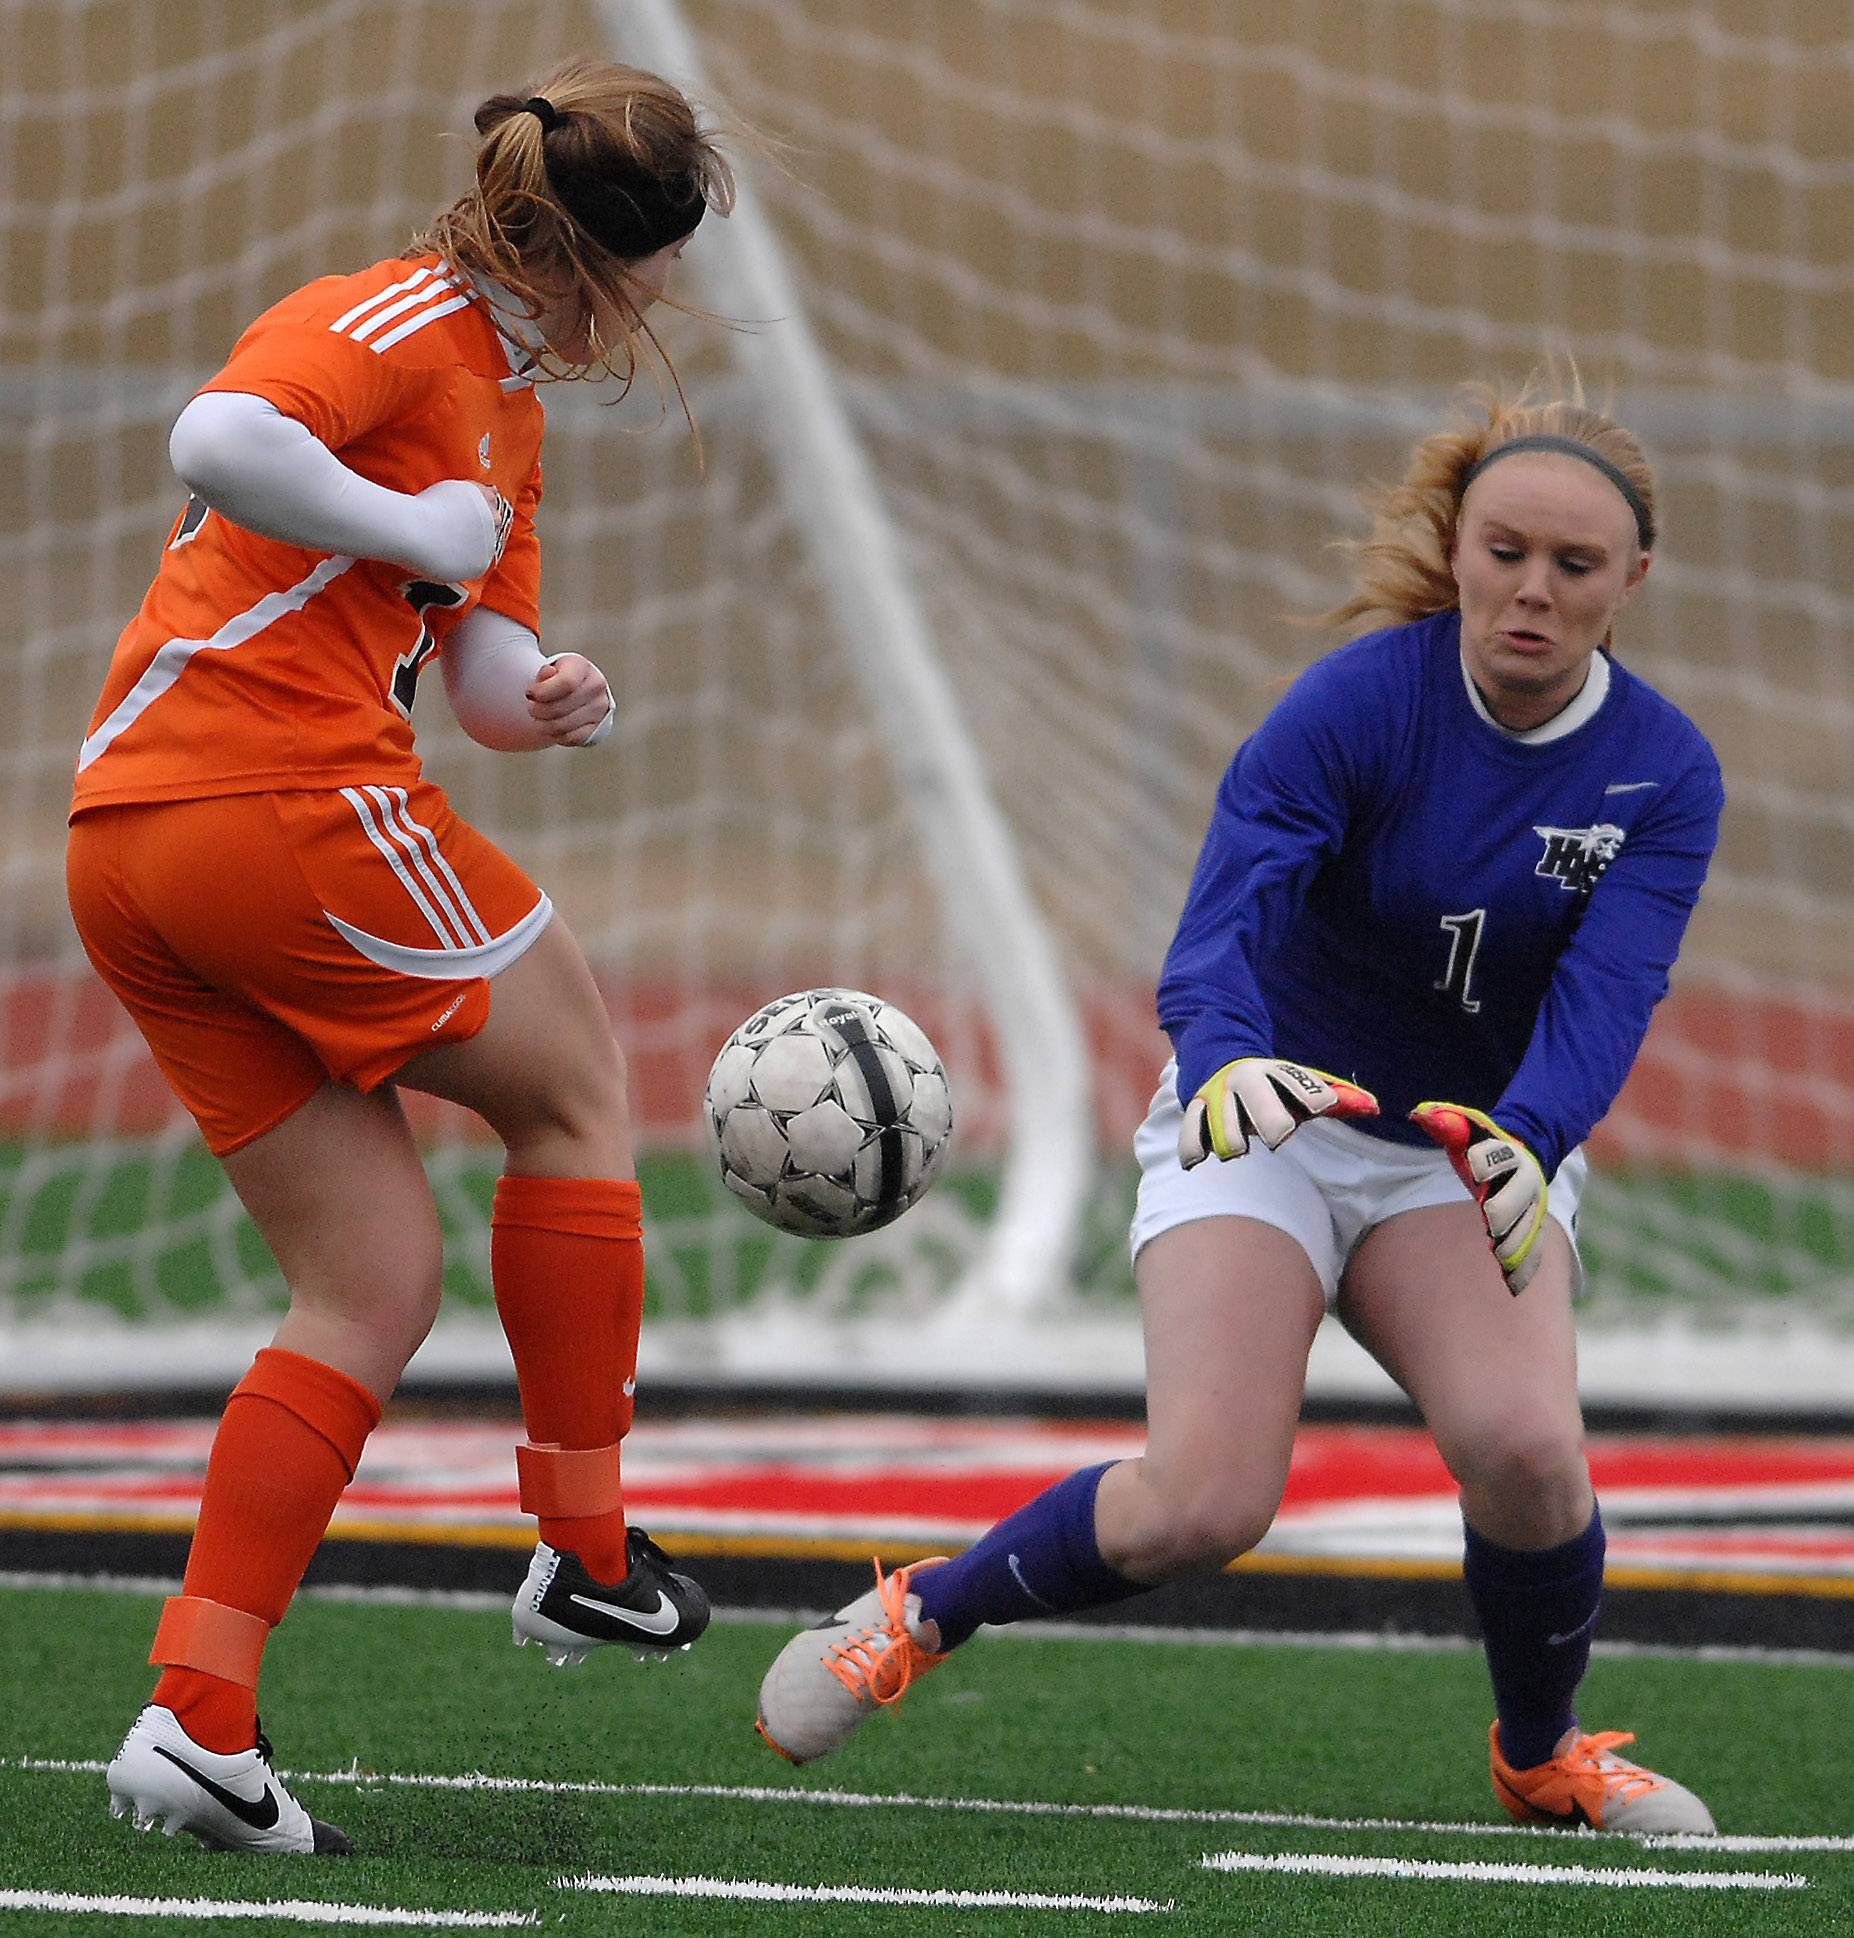 Huntley's Jessica Galason makes a point-blank save on a shot by Hersey's Lauren Gierman during Friday's game in Huntley.